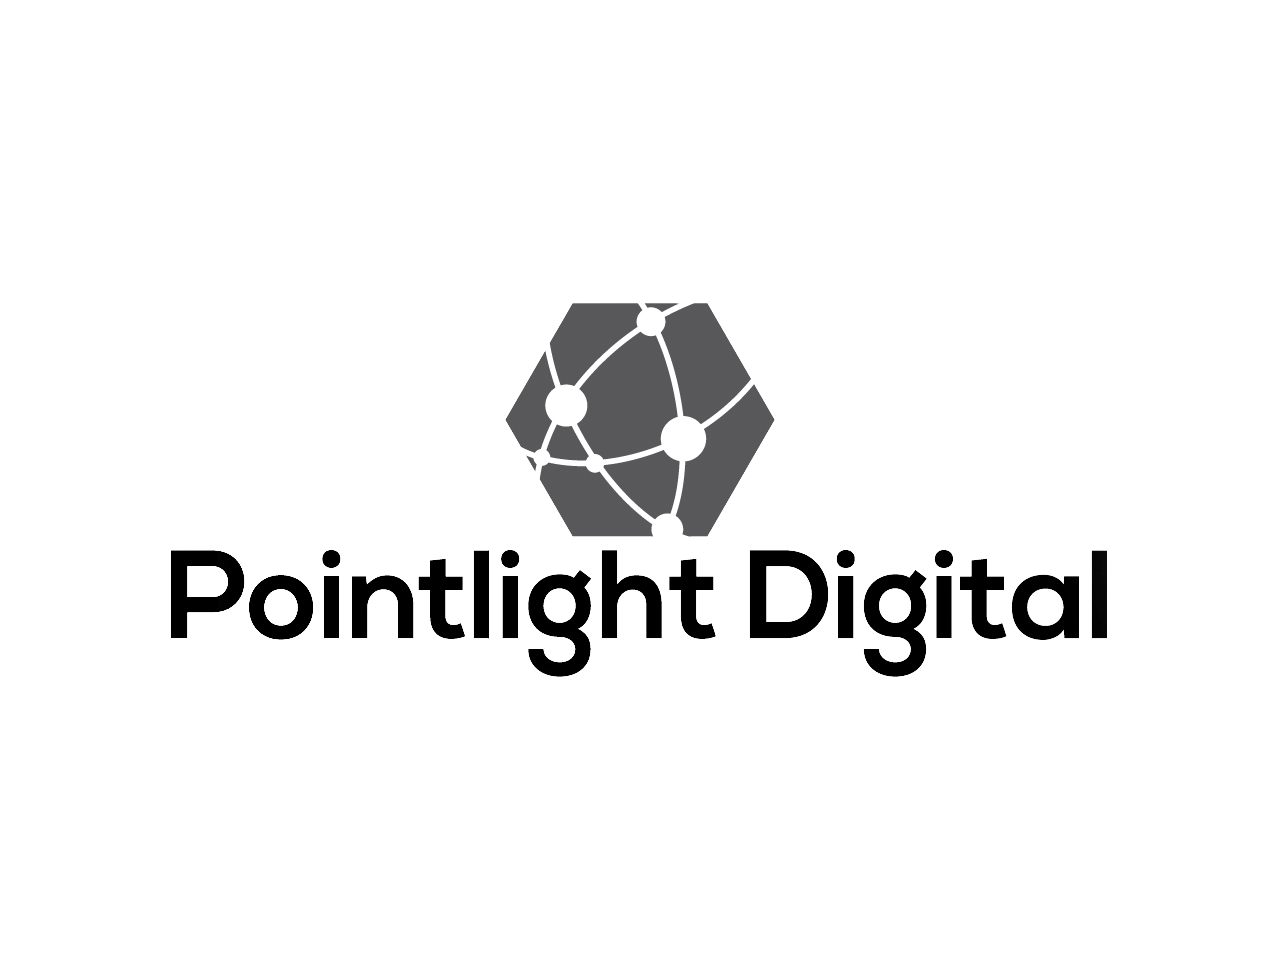 Pointlight Digital